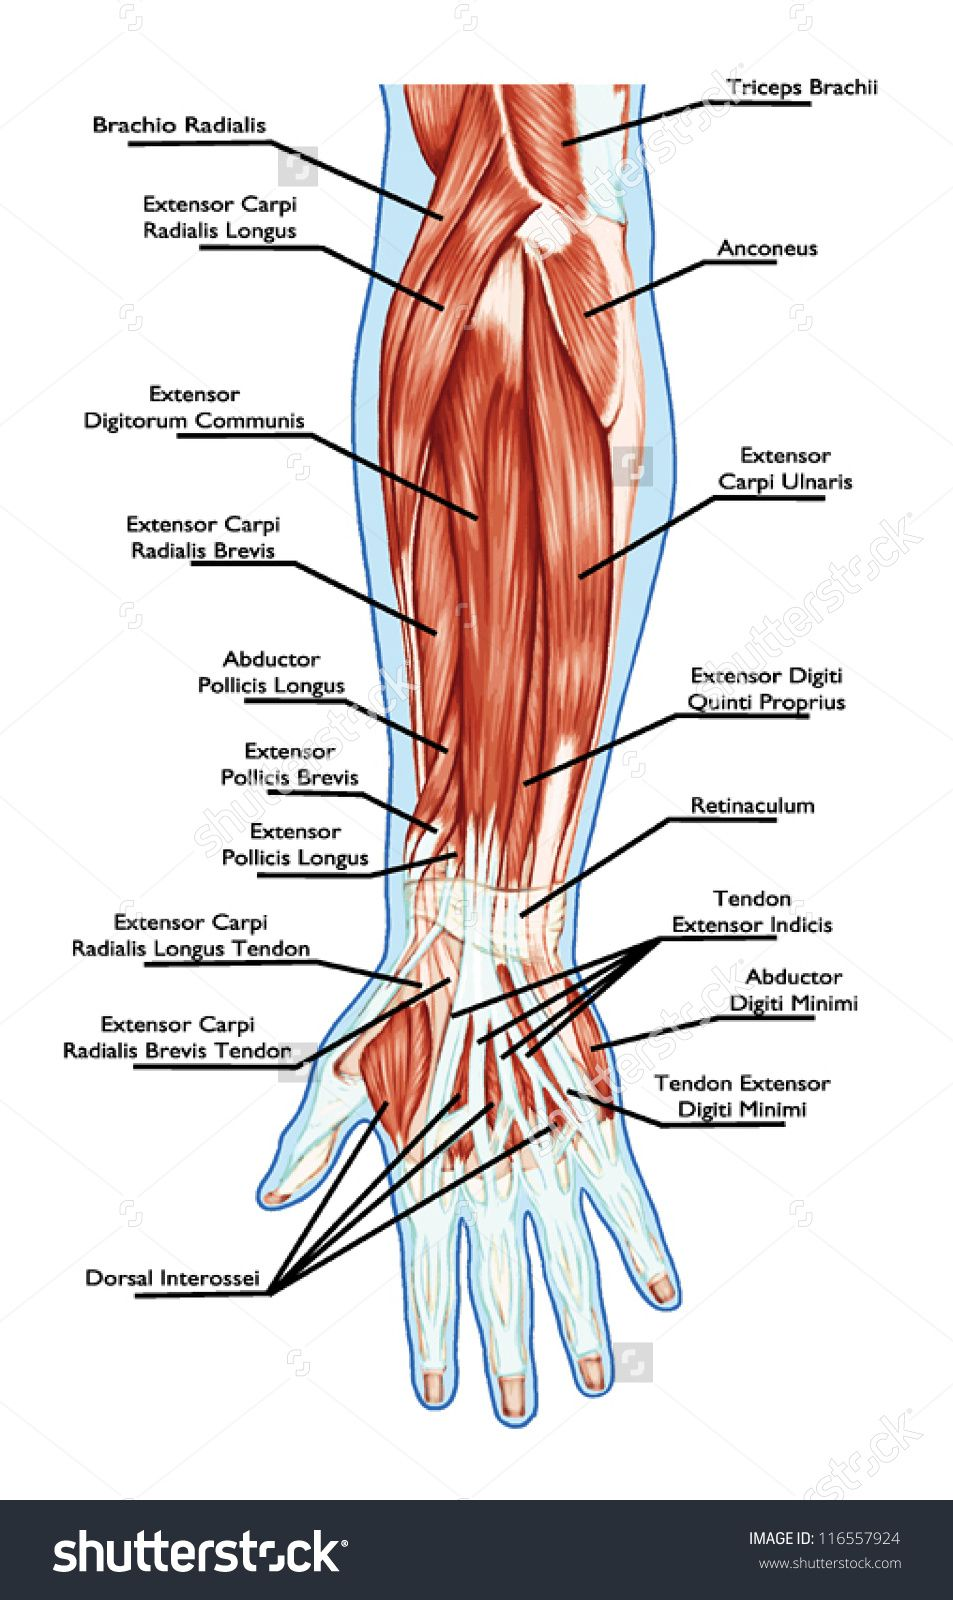 medium resolution of anatomy of muscular system hand forearm palm muscle diagram arm tendons ligaments diagram arm tendons ligaments